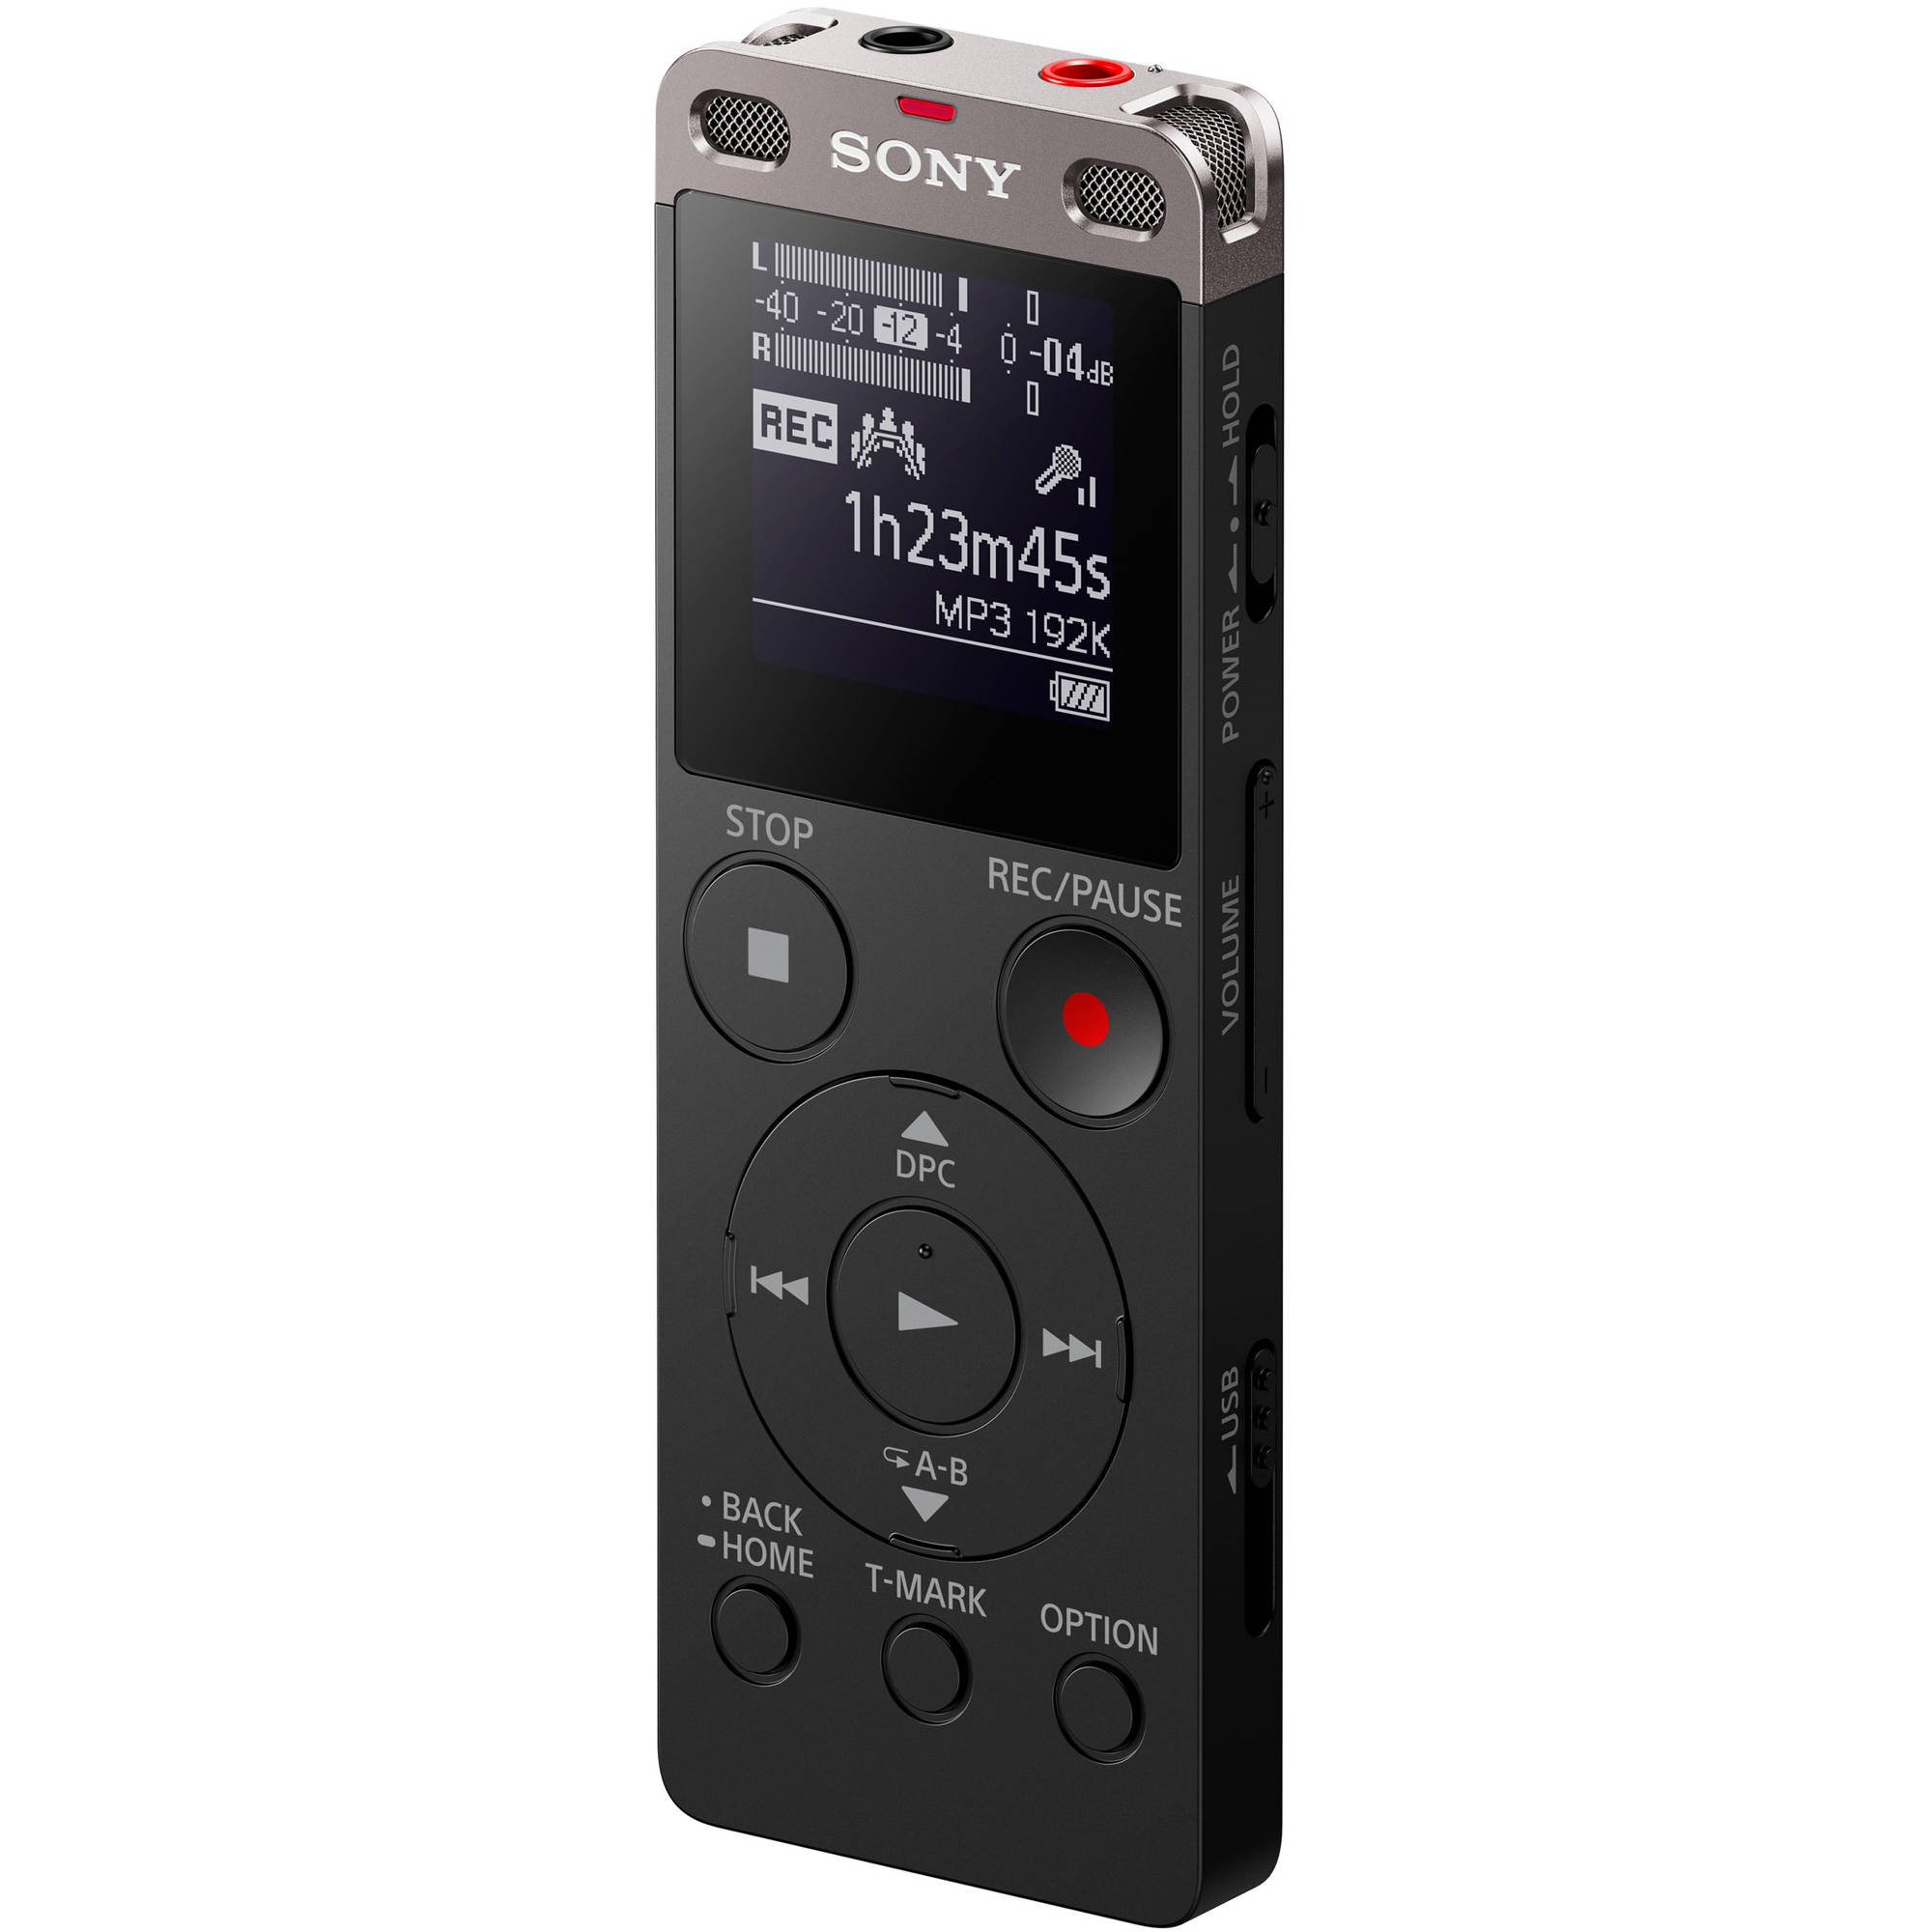 sony icd ux560 digital voice recorder with built in icdux560blk